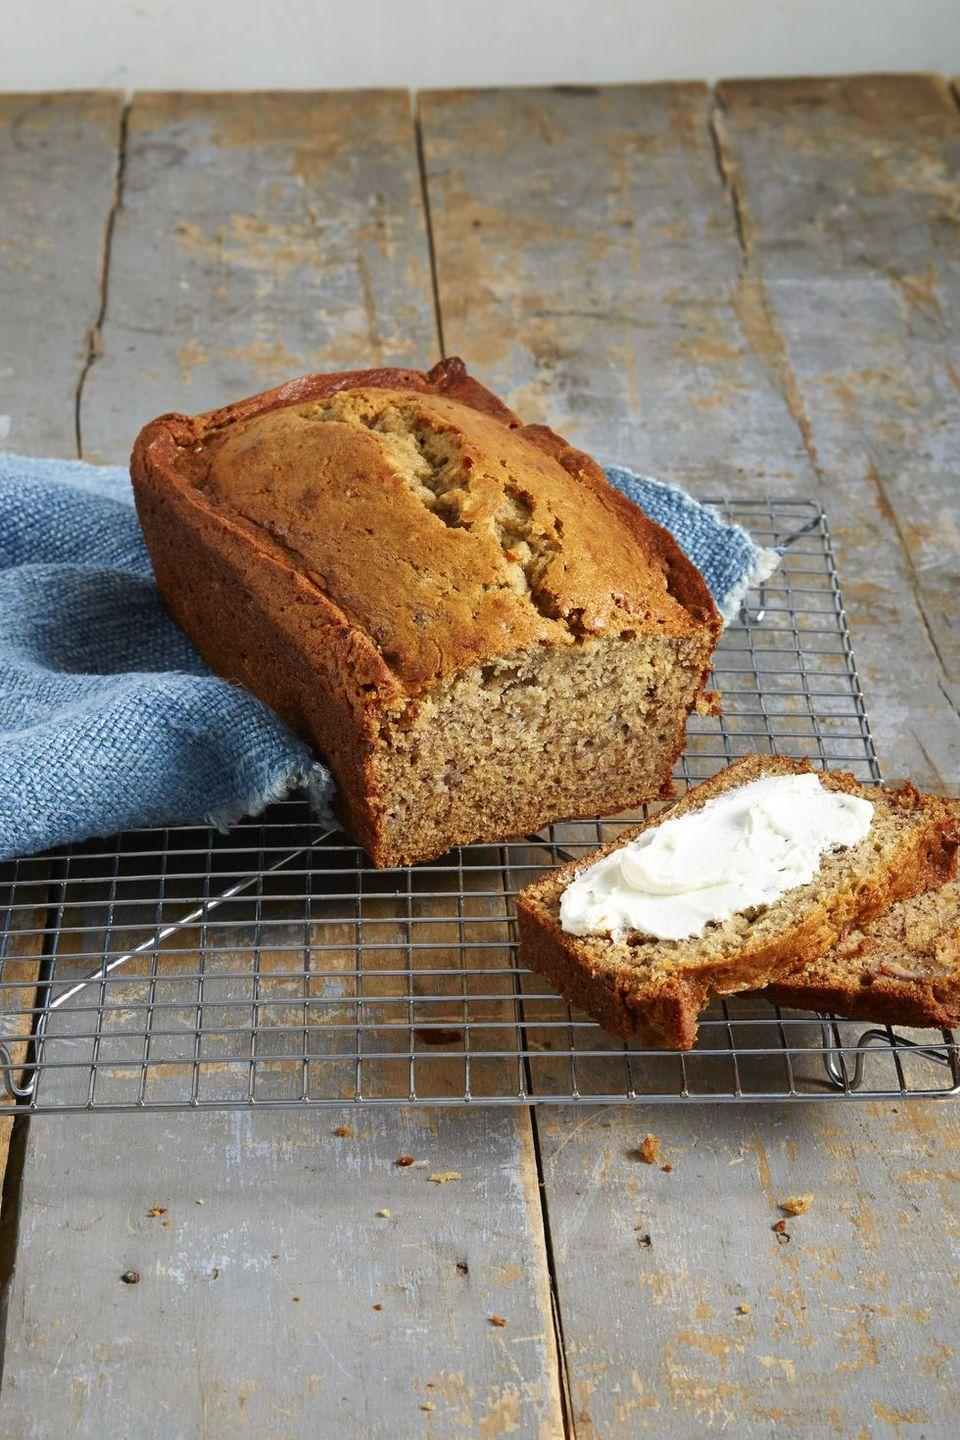 """<p>The more ripe the bananas are, the better! We're obsessed with how brown sugar and vanilla extract turn this loaf into a sweet-and-savory bite you'll want again and again.</p><p><em><em><a href=""""https://www.goodhousekeeping.com/food-recipes/dessert/a40395/homestyle-banana-bread-recipe/"""" rel=""""nofollow noopener"""" target=""""_blank"""" data-ylk=""""slk:Get the Homestyle Banana Bread recipe »"""" class=""""link rapid-noclick-resp"""">Get the Homestyle Banana Bread recipe »</a></em></em></p><p><strong>RELATED:</strong><a href=""""https://www.goodhousekeeping.com/food-recipes/g32071475/bread-machine-recipes/"""" rel=""""nofollow noopener"""" target=""""_blank"""" data-ylk=""""slk:The Best Recipes for Your Bread Machines"""" class=""""link rapid-noclick-resp""""> The Best Recipes for Your Bread Machines</a></p>"""